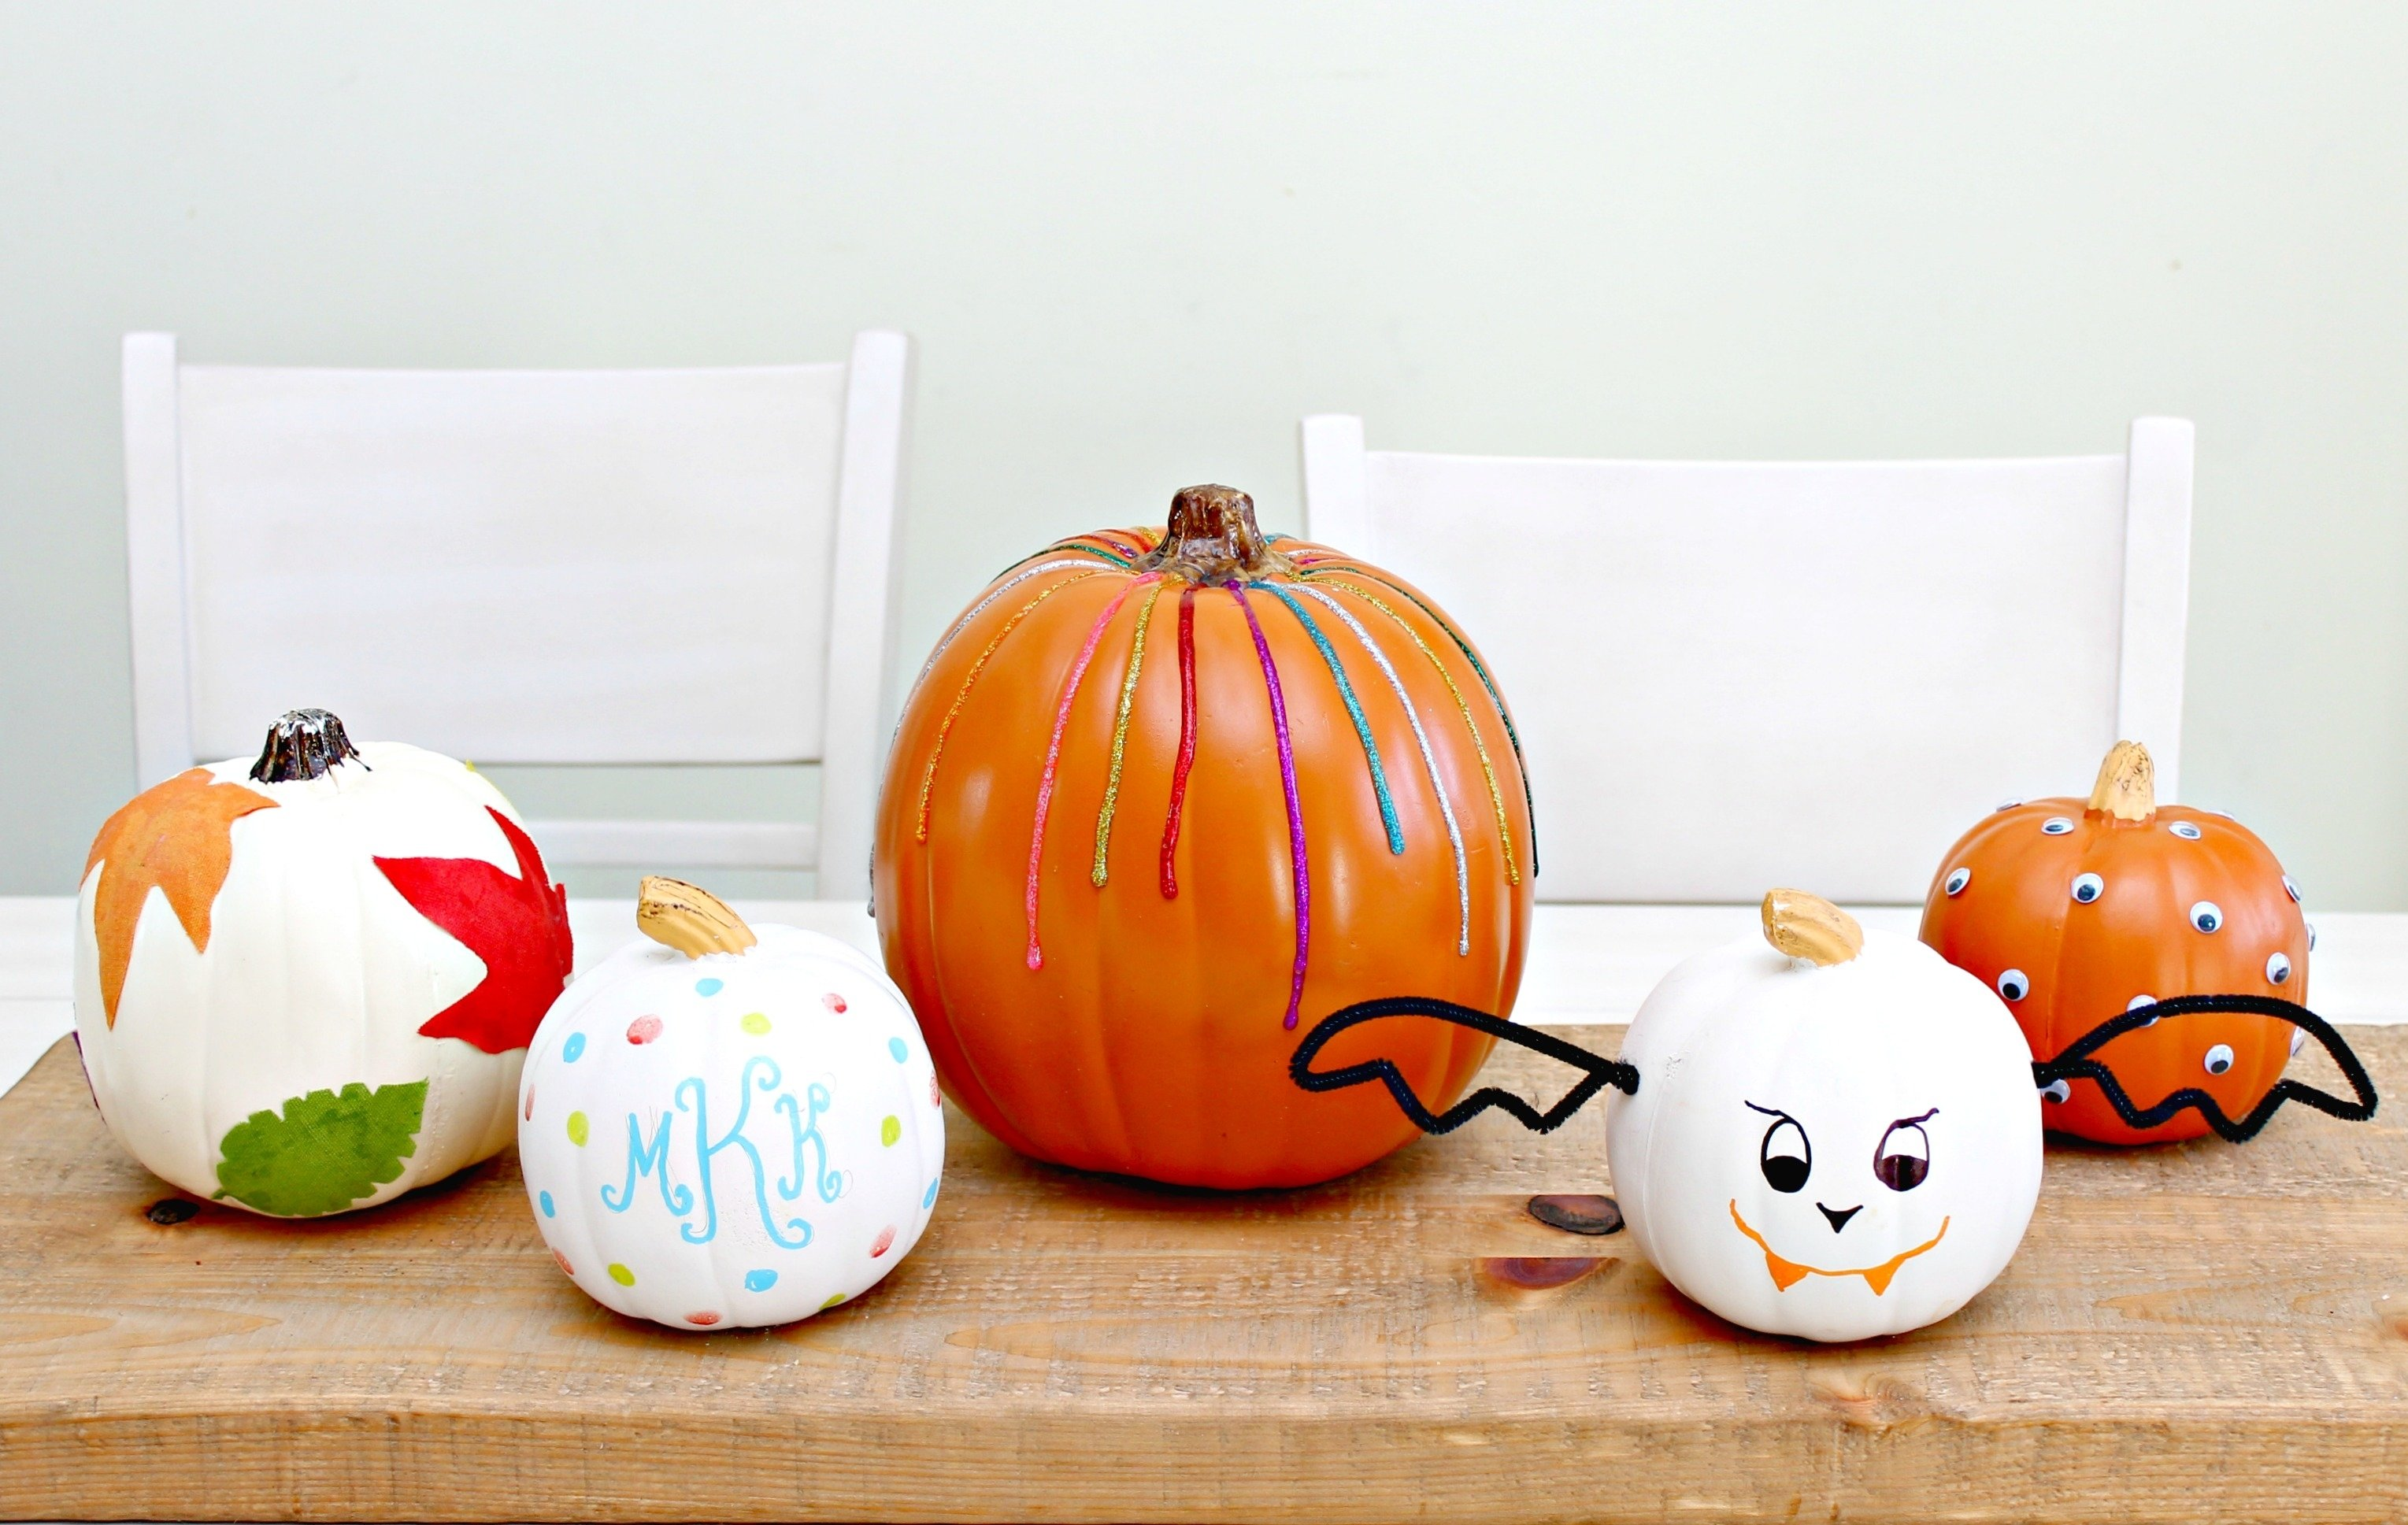 Awesome creative pumpkin decorating ideas without carving